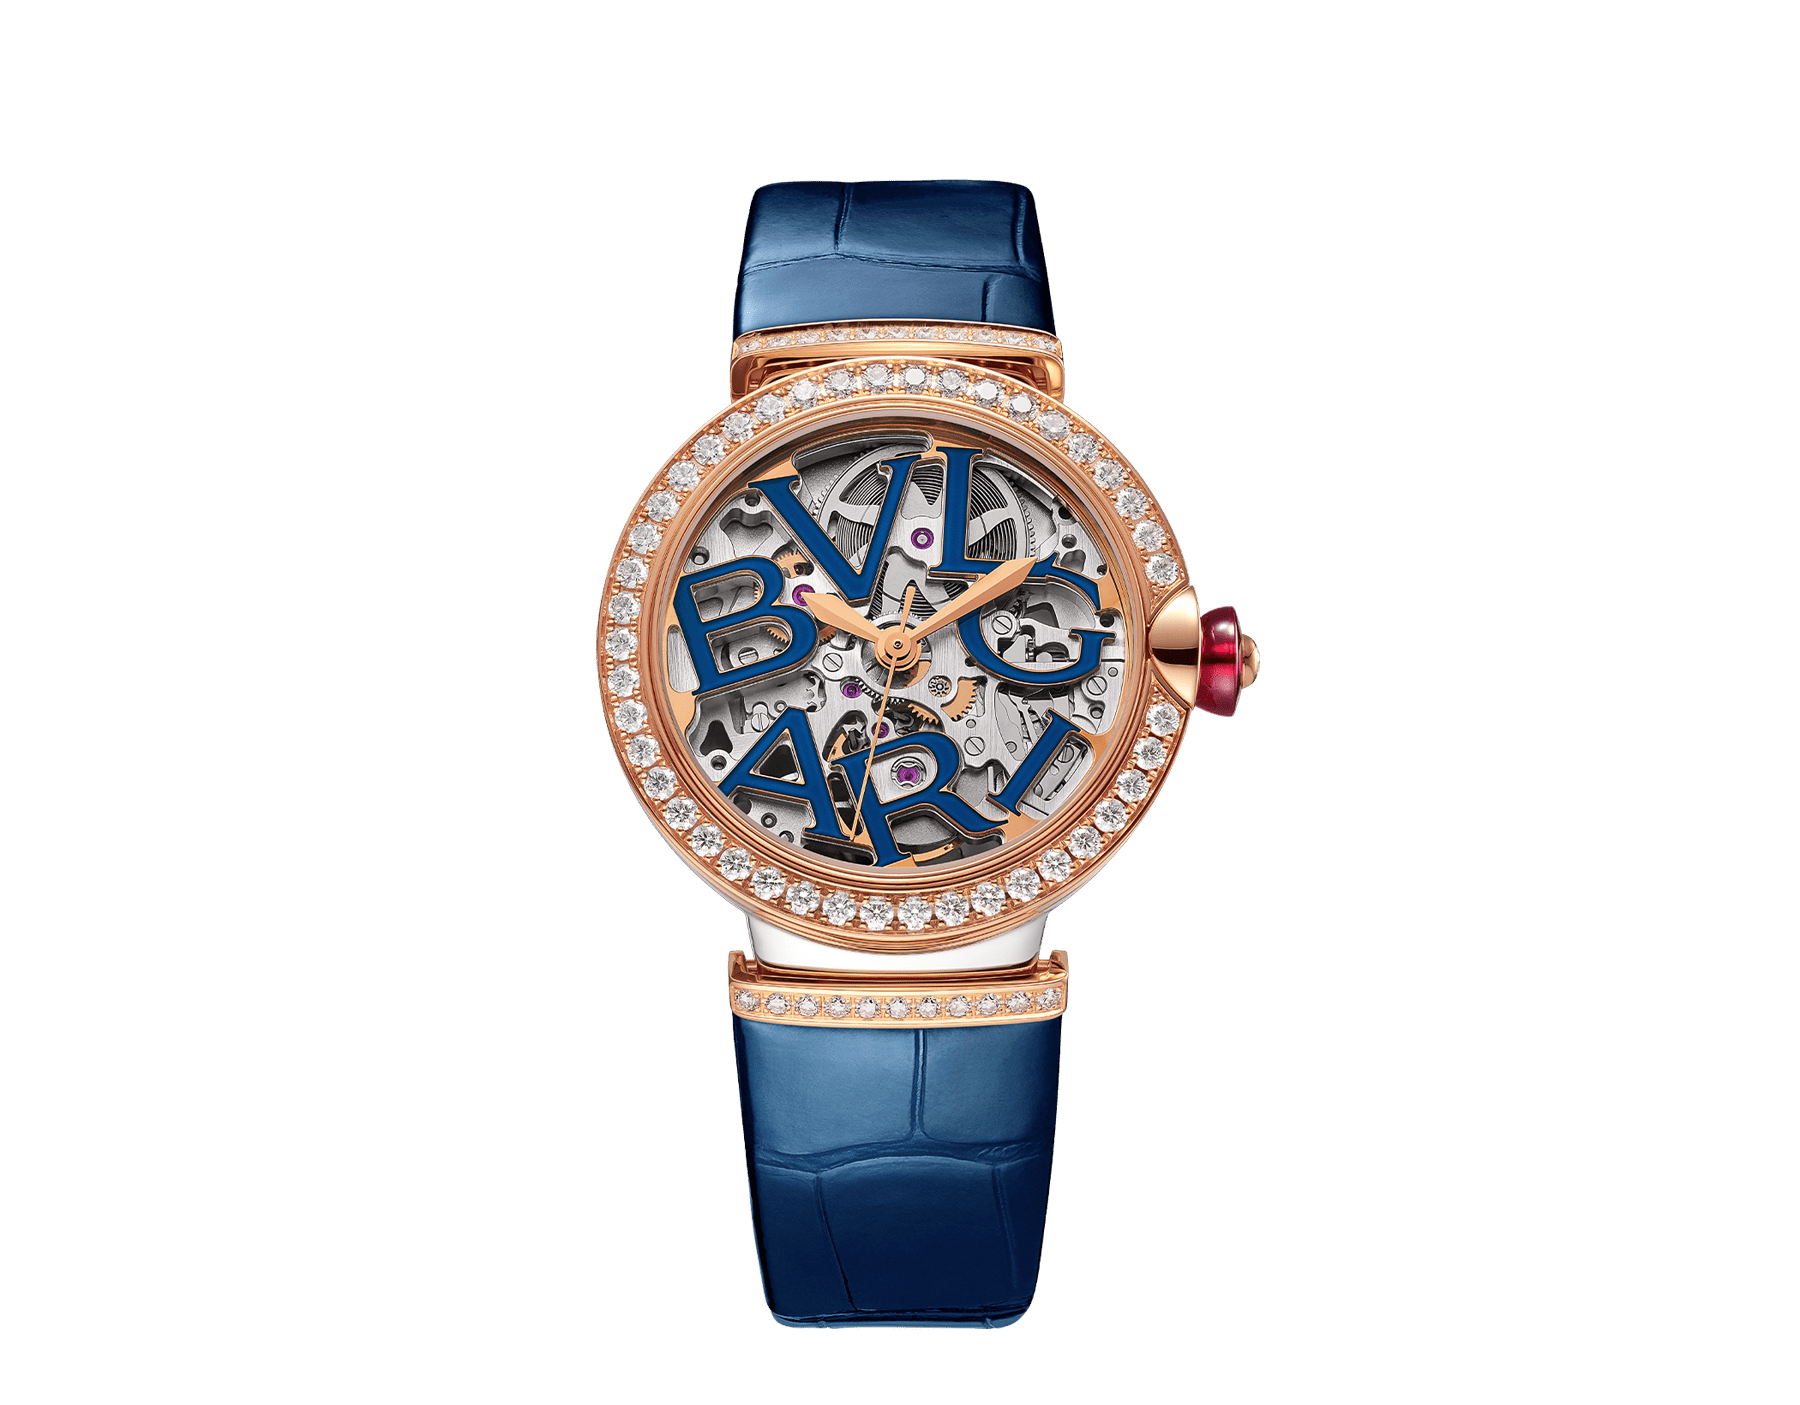 LVCEA Skeleton watch with mechanical manufacture movement, automatic winding and skeleton execution, polished stainless steel case, 18 kt rose gold bezel and links set with diamonds, blue lacquered openwork BVLGARI logo dial and blue alligator bracelet. Water-resistant up to 30 metres 103304 image 1